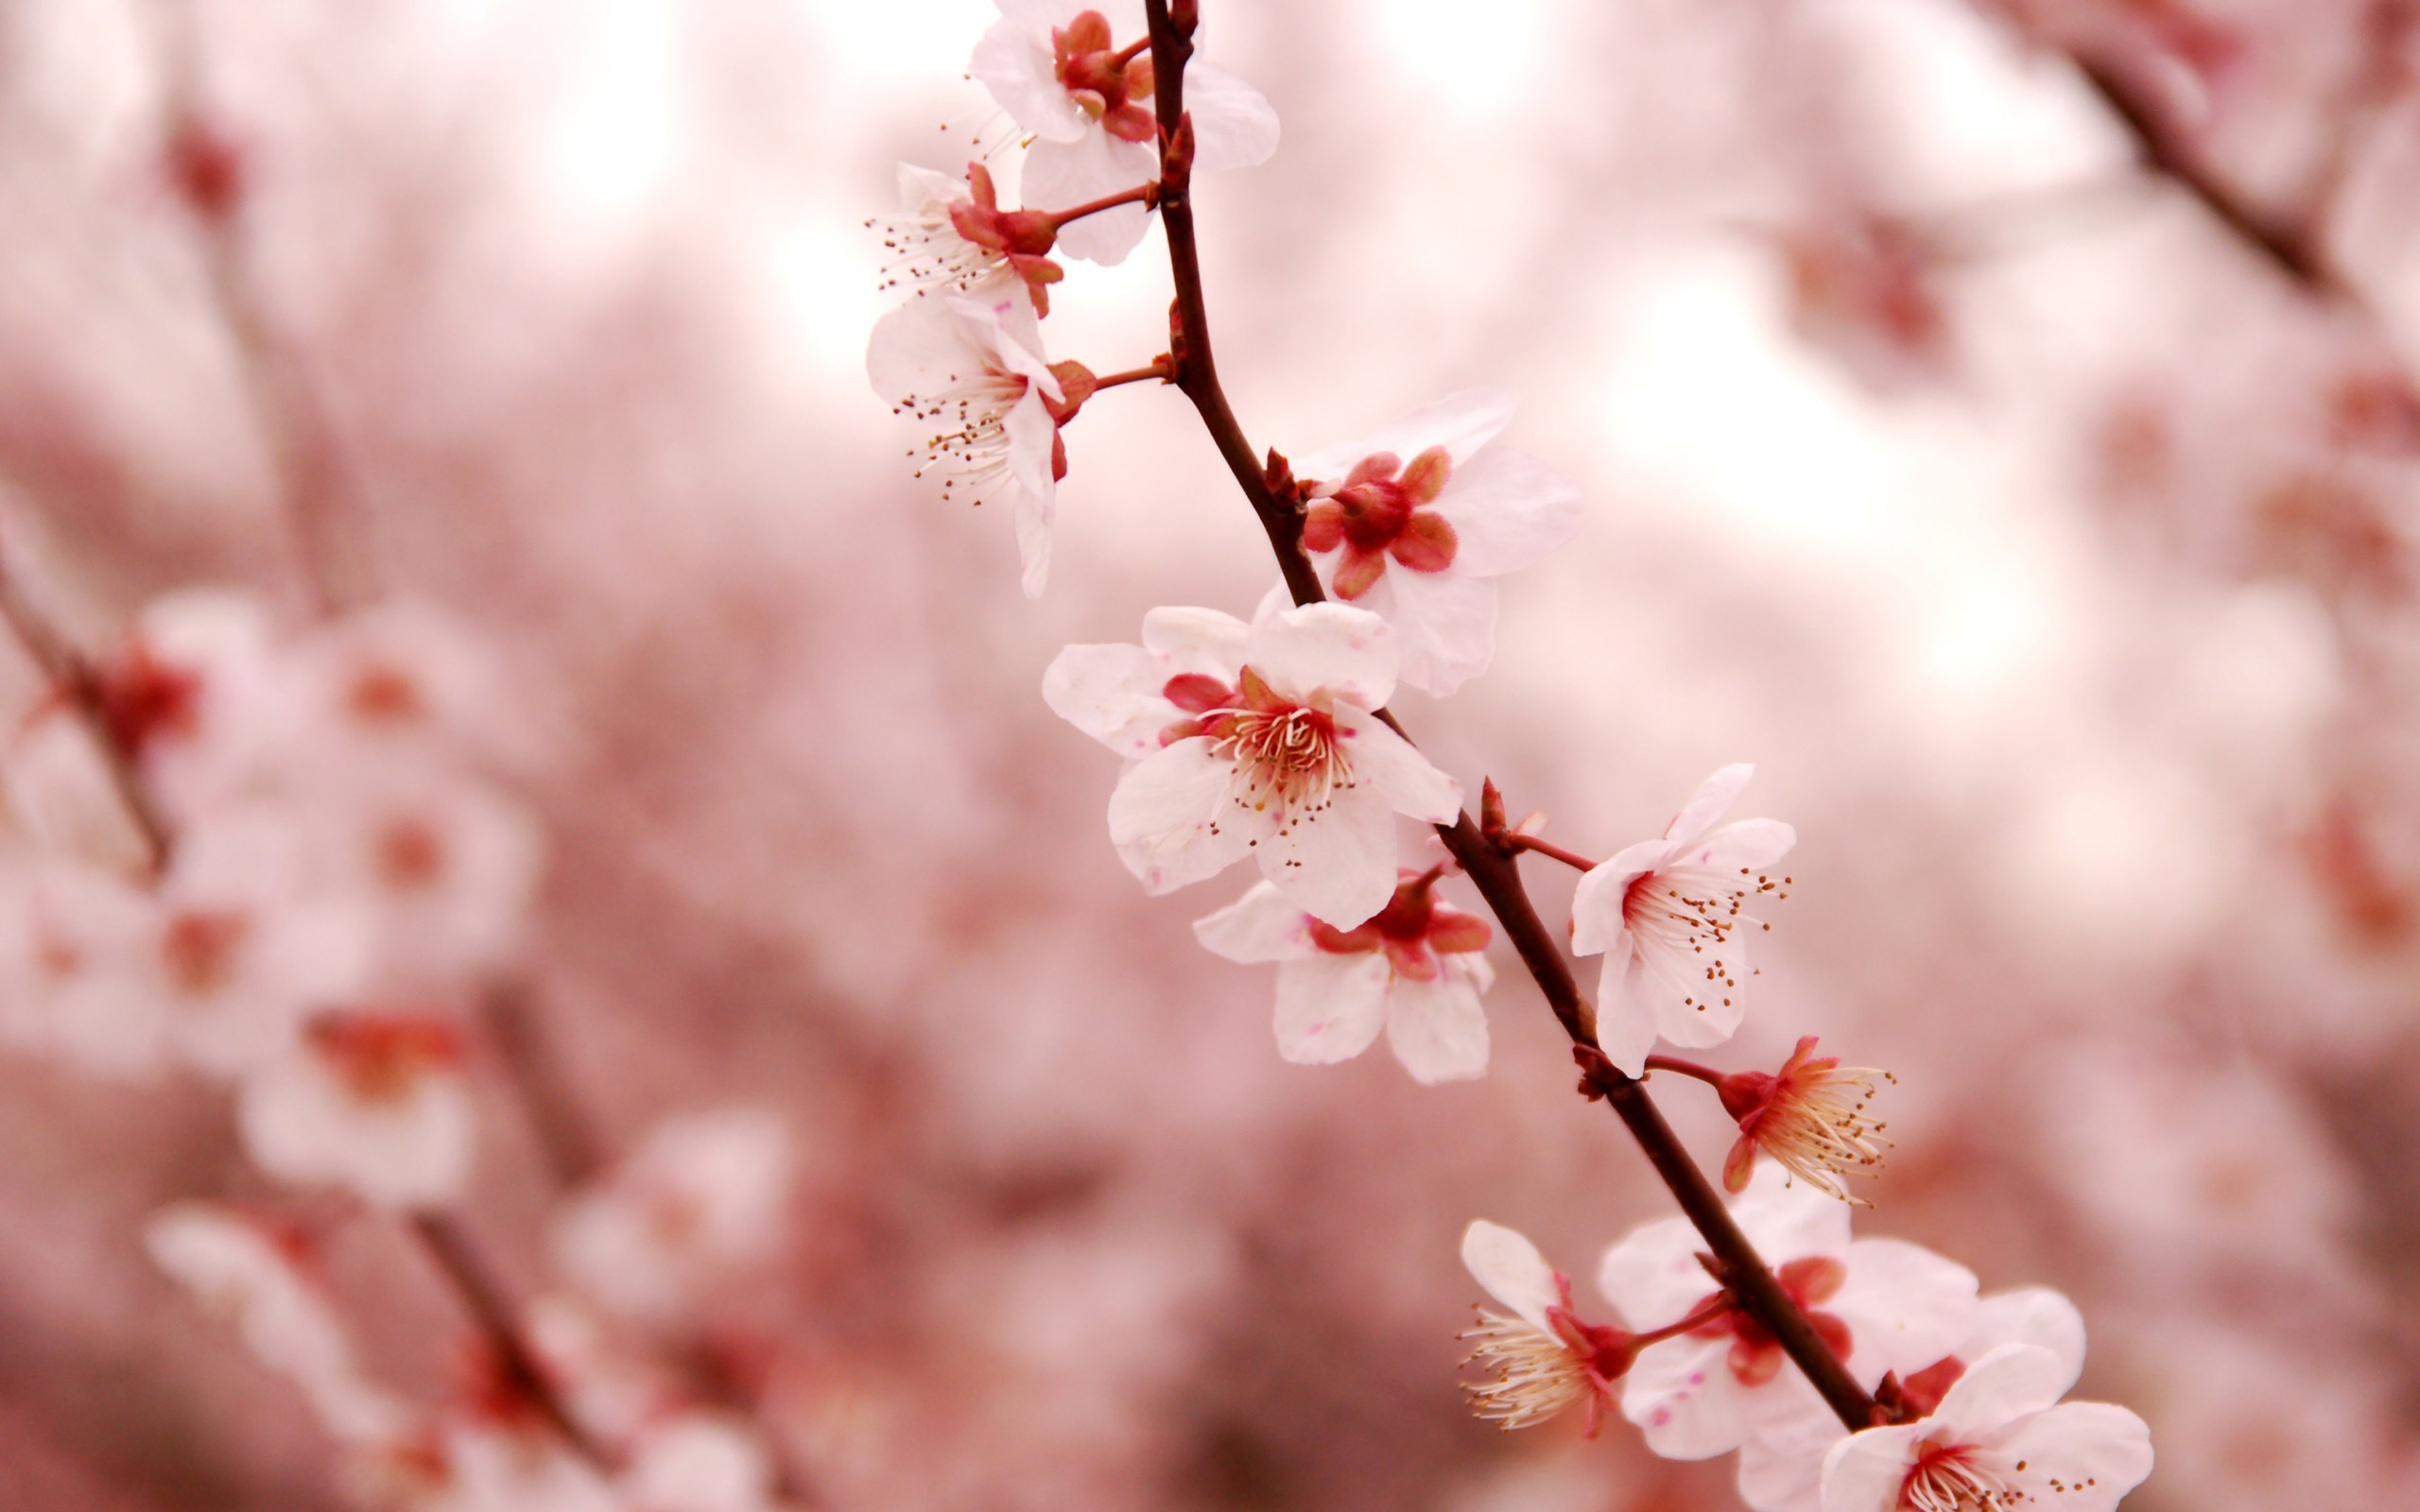 Lovely cherry blossom wallpaper 2560x1600 23207 Cherry blossom pictures